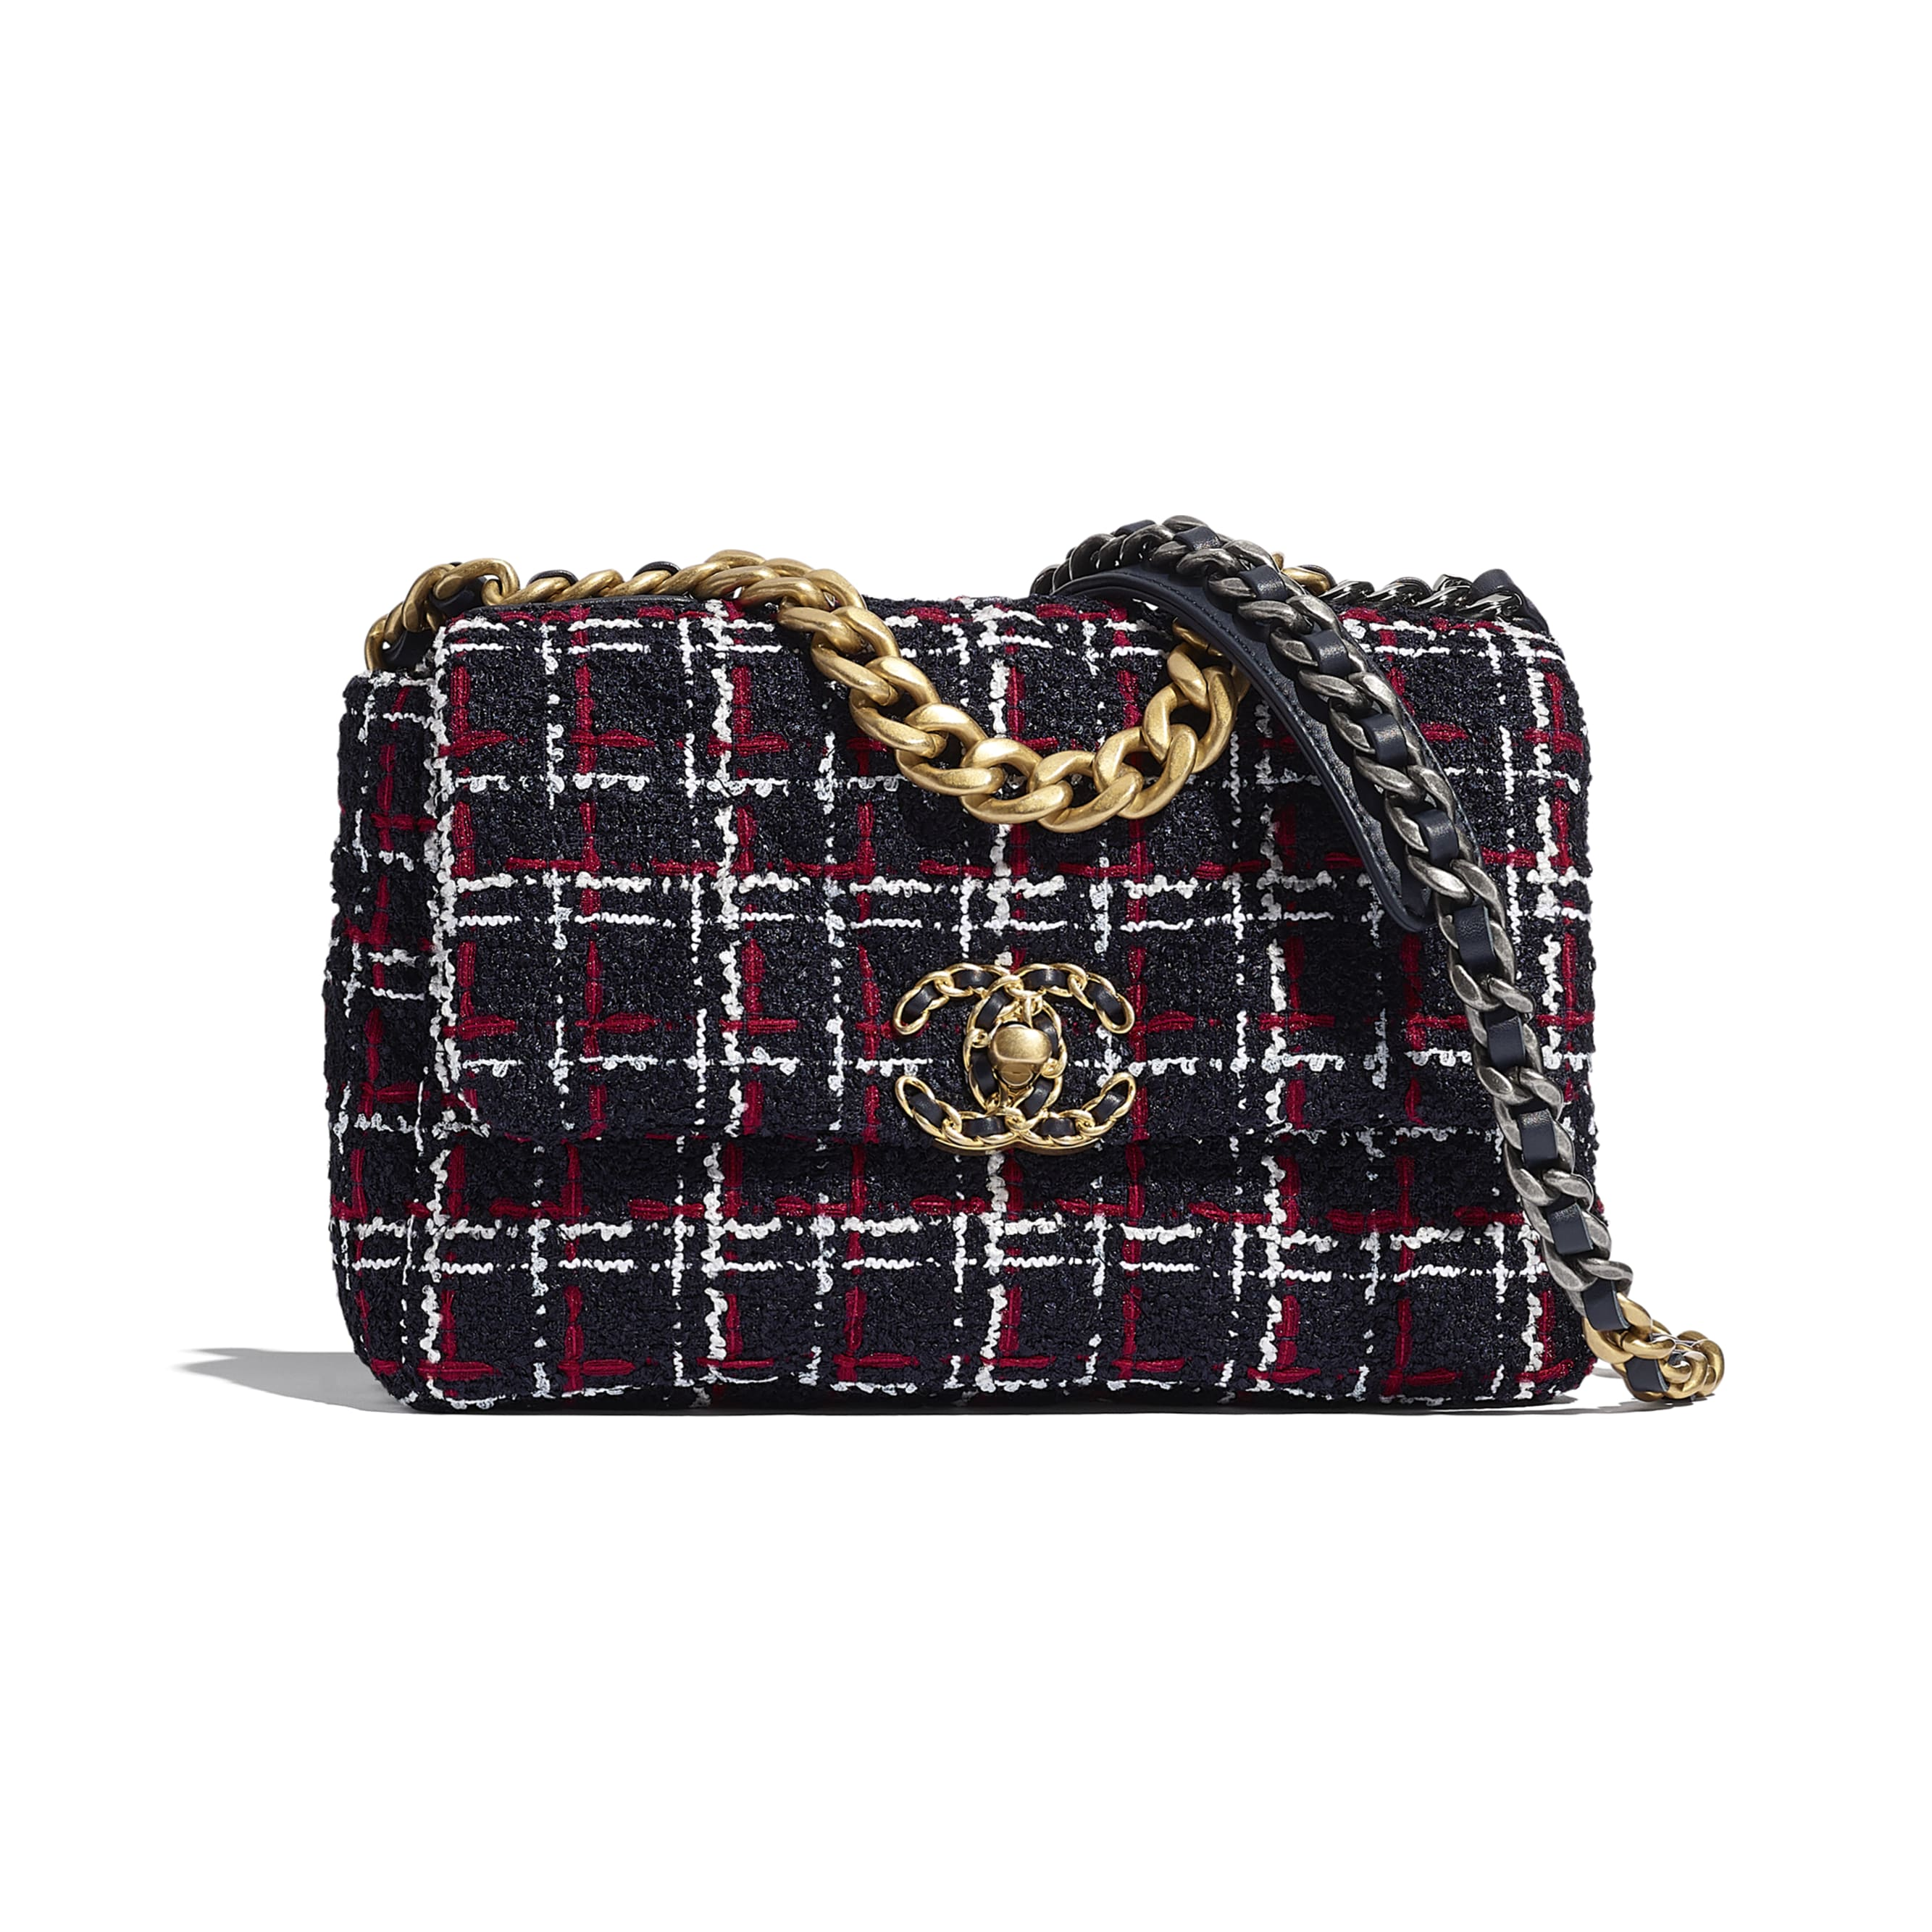 CHANEL 19 Flap Bag - Navy Blue, White & Red - Tweed, Gold-Tone, Silver-Tone & Ruthenium-Finish Metal - CHANEL - Default view - see standard sized version